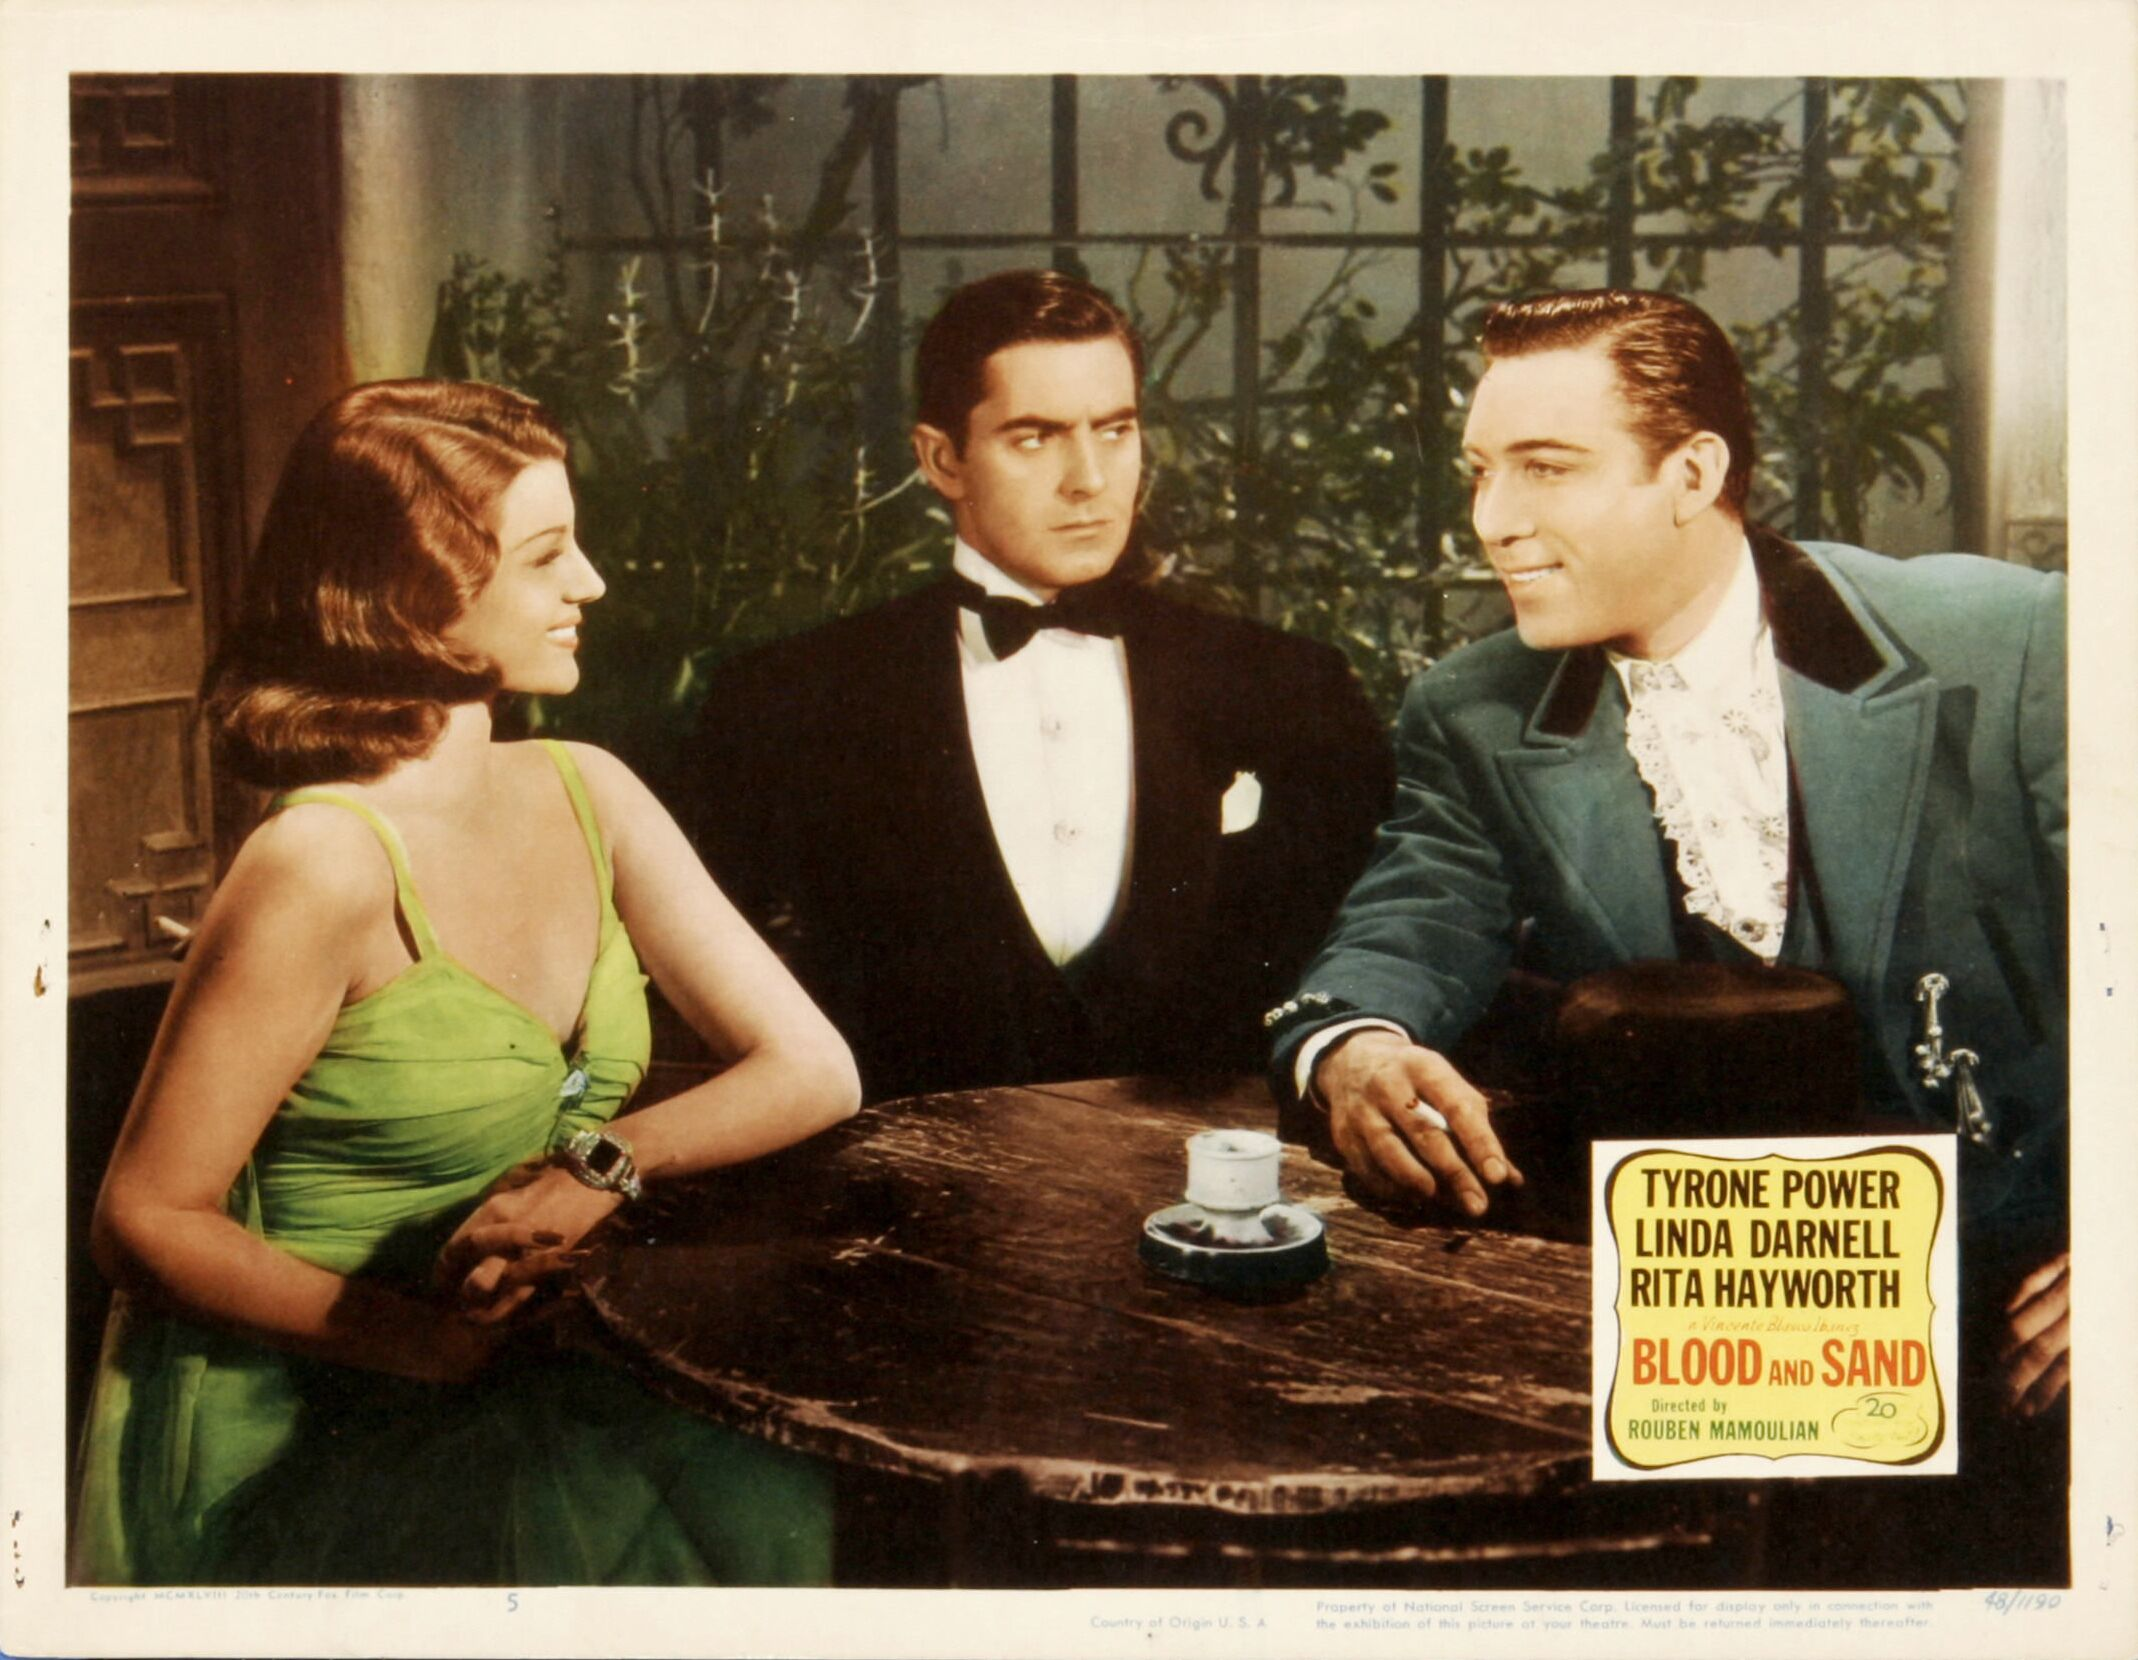 Rita Hayworth, Tyrone Power, Anthony Quinn: Two beauties, one beast.